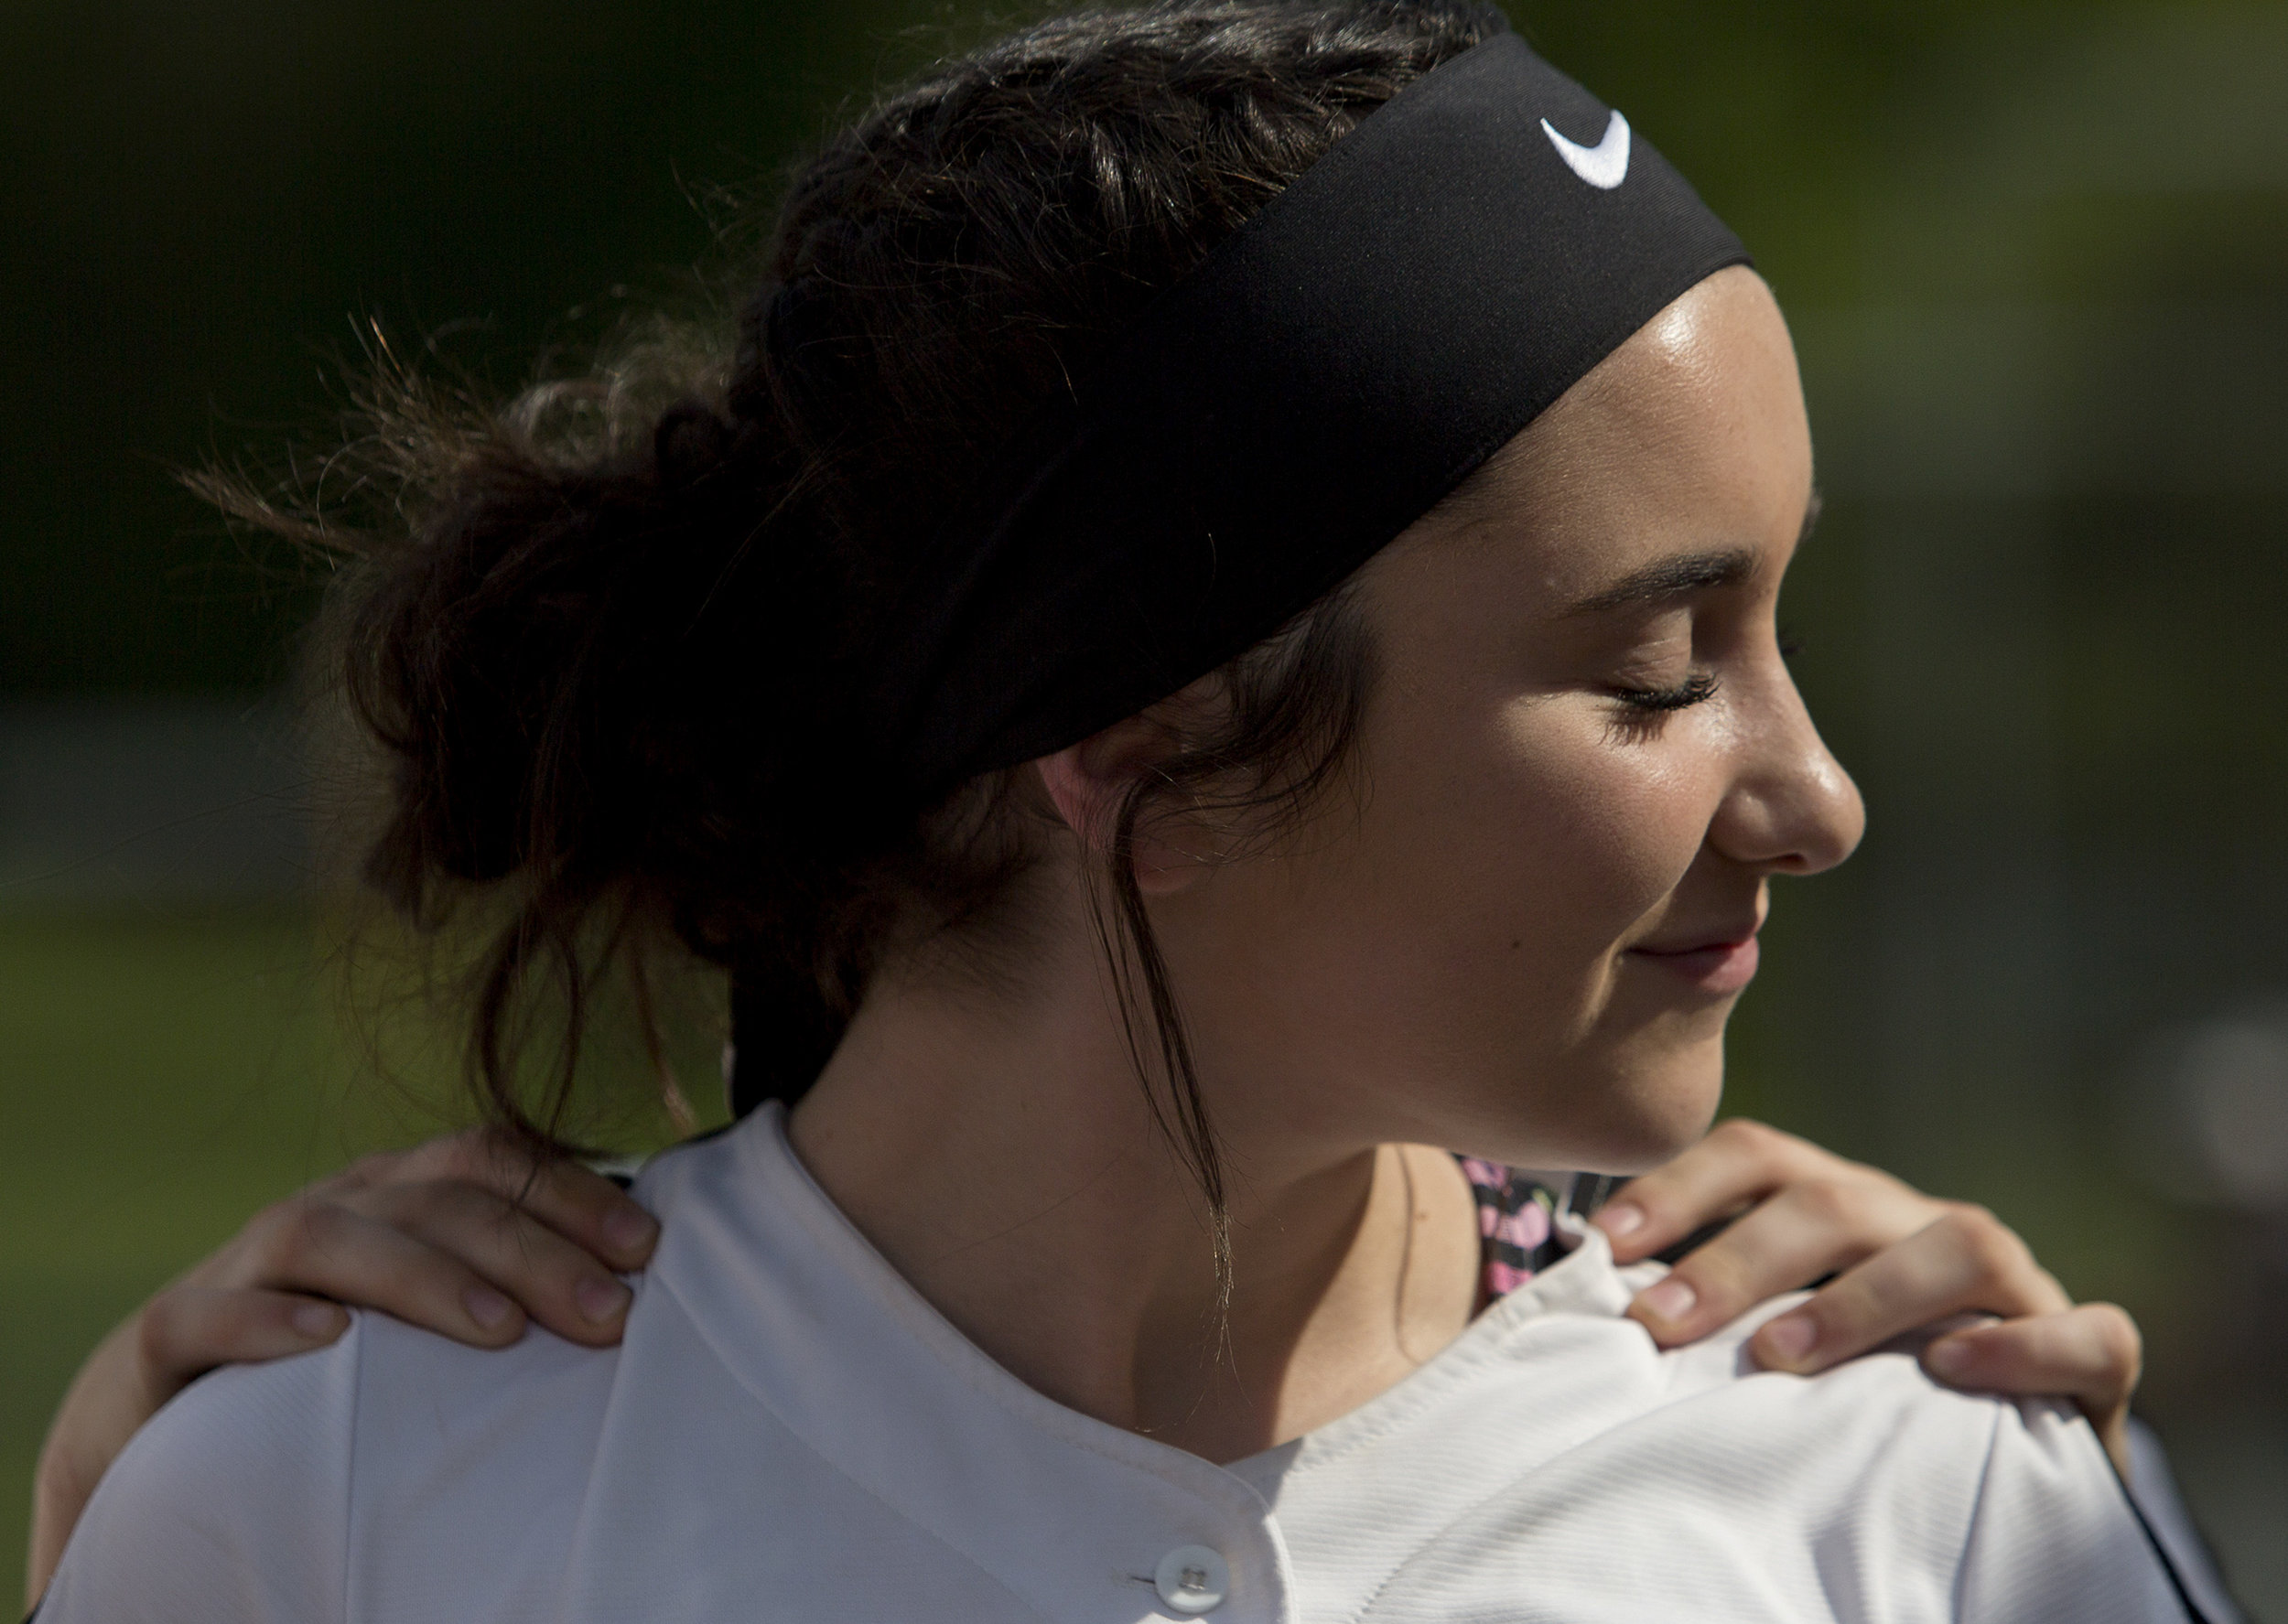 Northeast Dubois' Haley Reckelhoff got a shoulder rub from teammate Madison Voegerl before facing South Knox in Dubois on May 10, 2018. Northeast Dubois won 8-0.